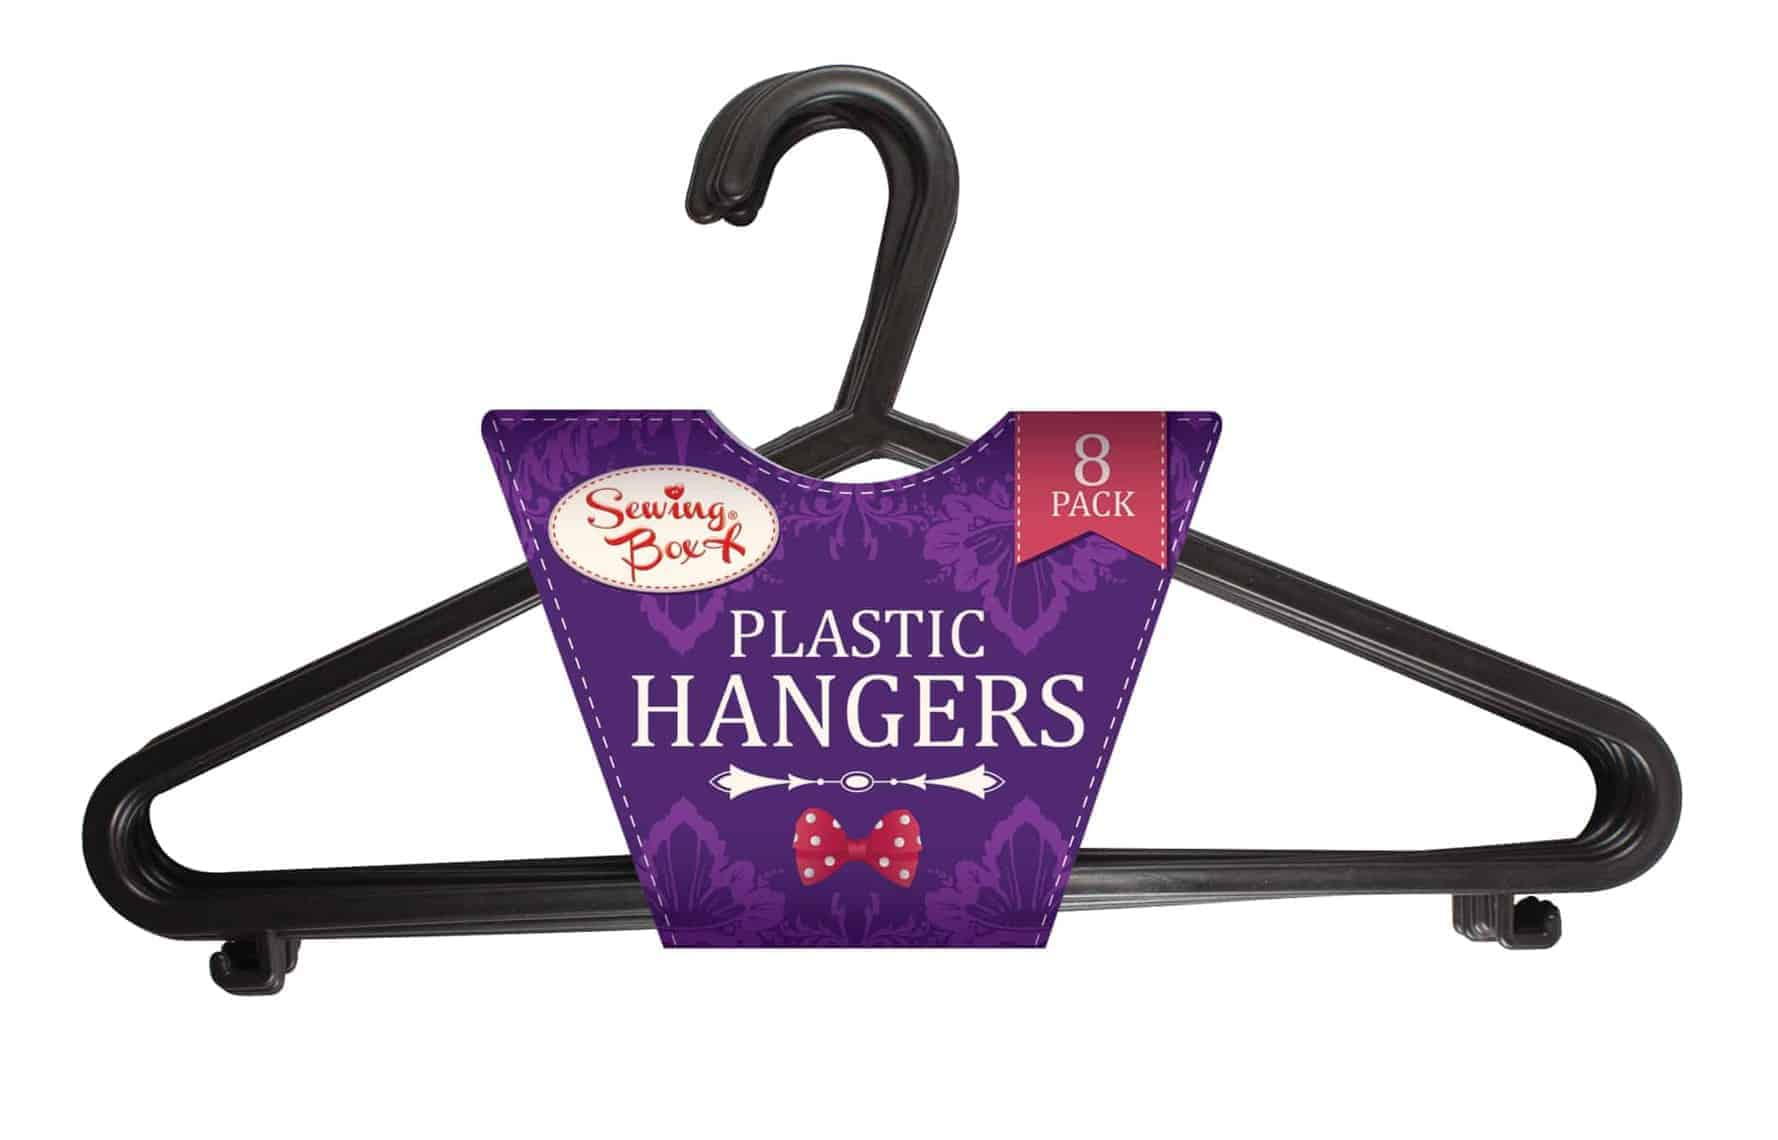 Sewing Box 8pk Plastic Hangers